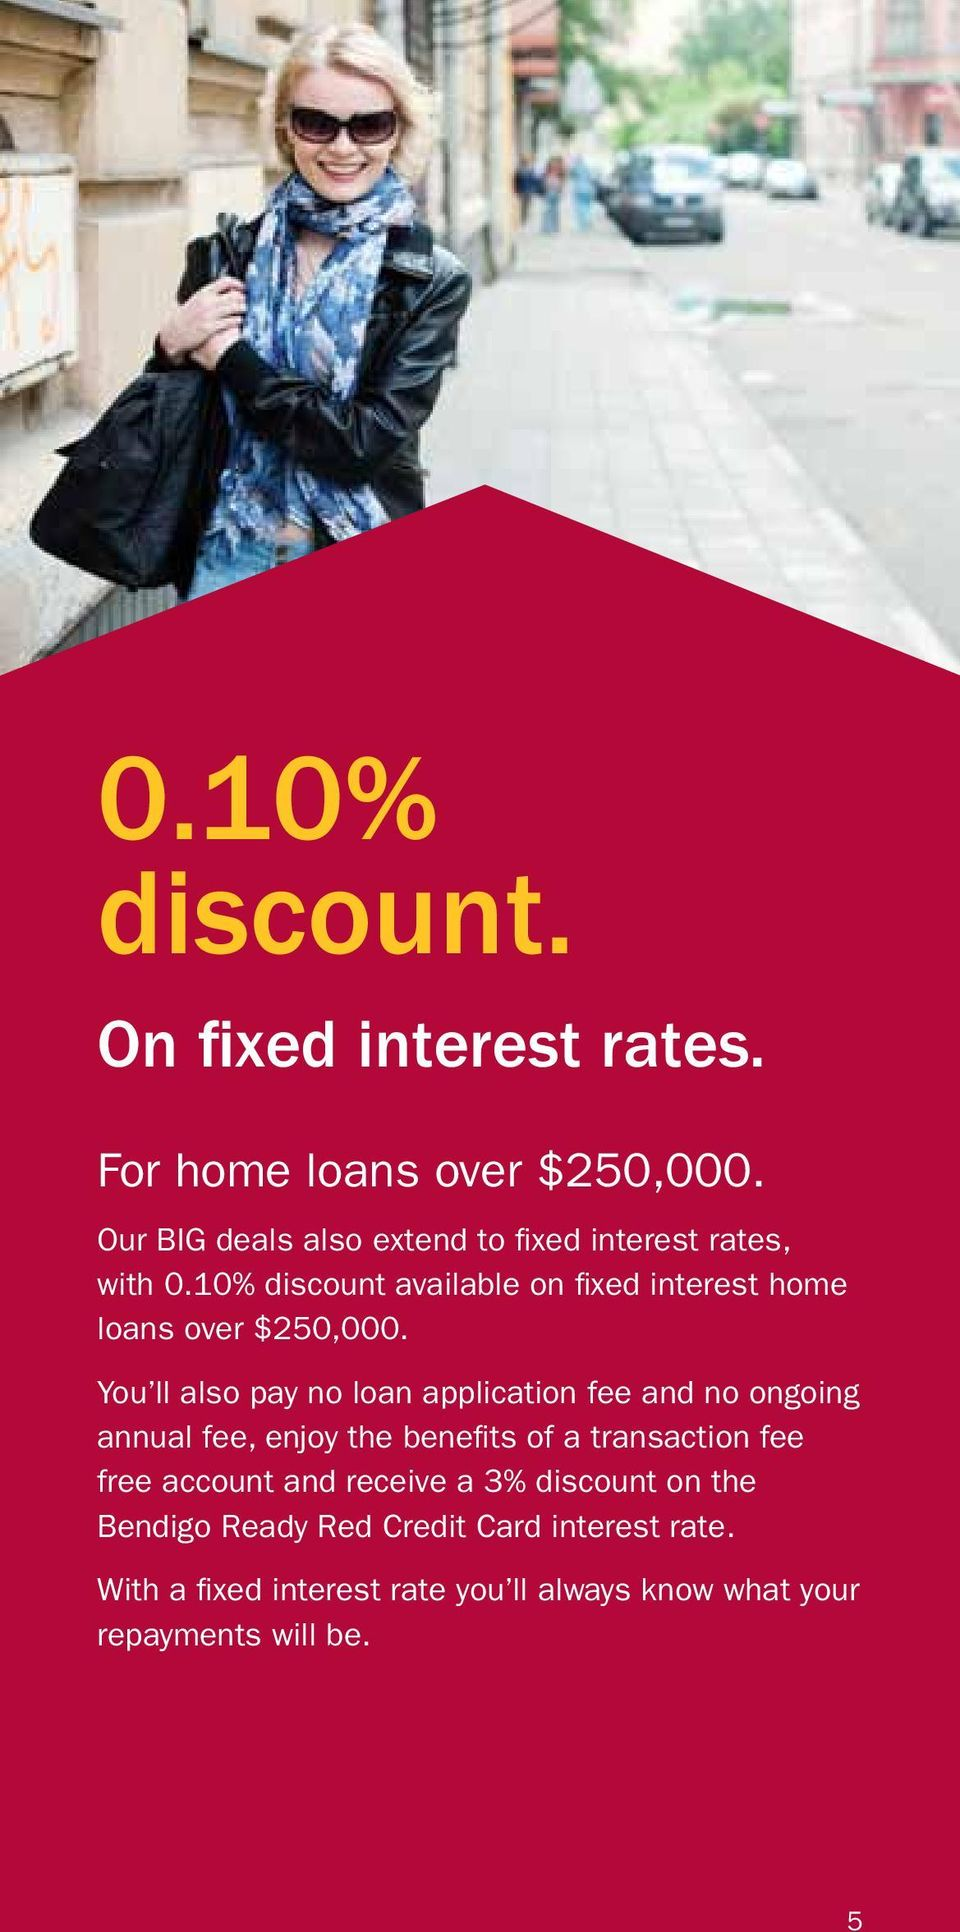 10% discount available on fixed interest home loans over $250,000.